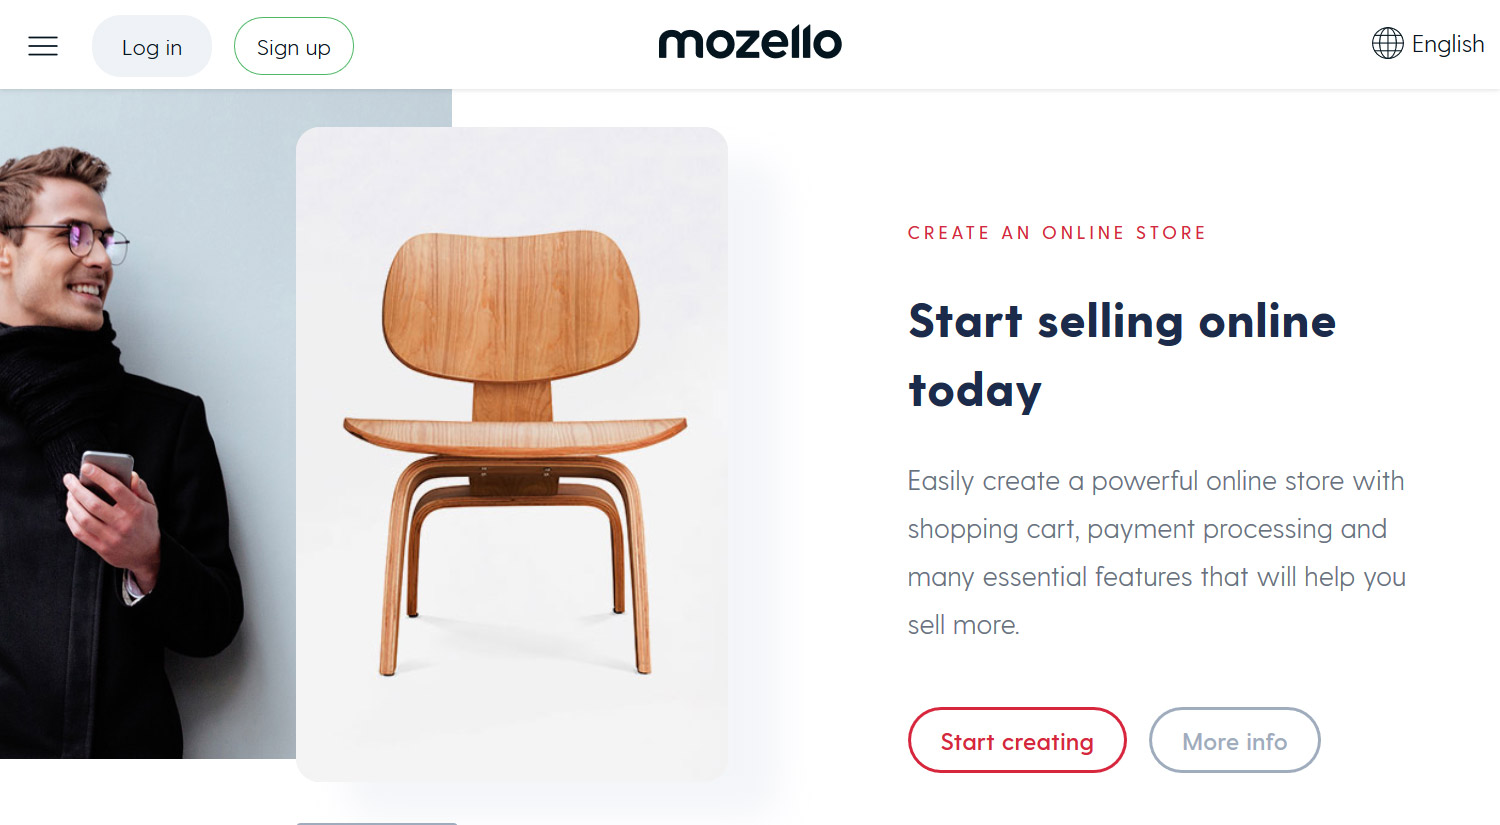 Free online store design and templates with Mozello